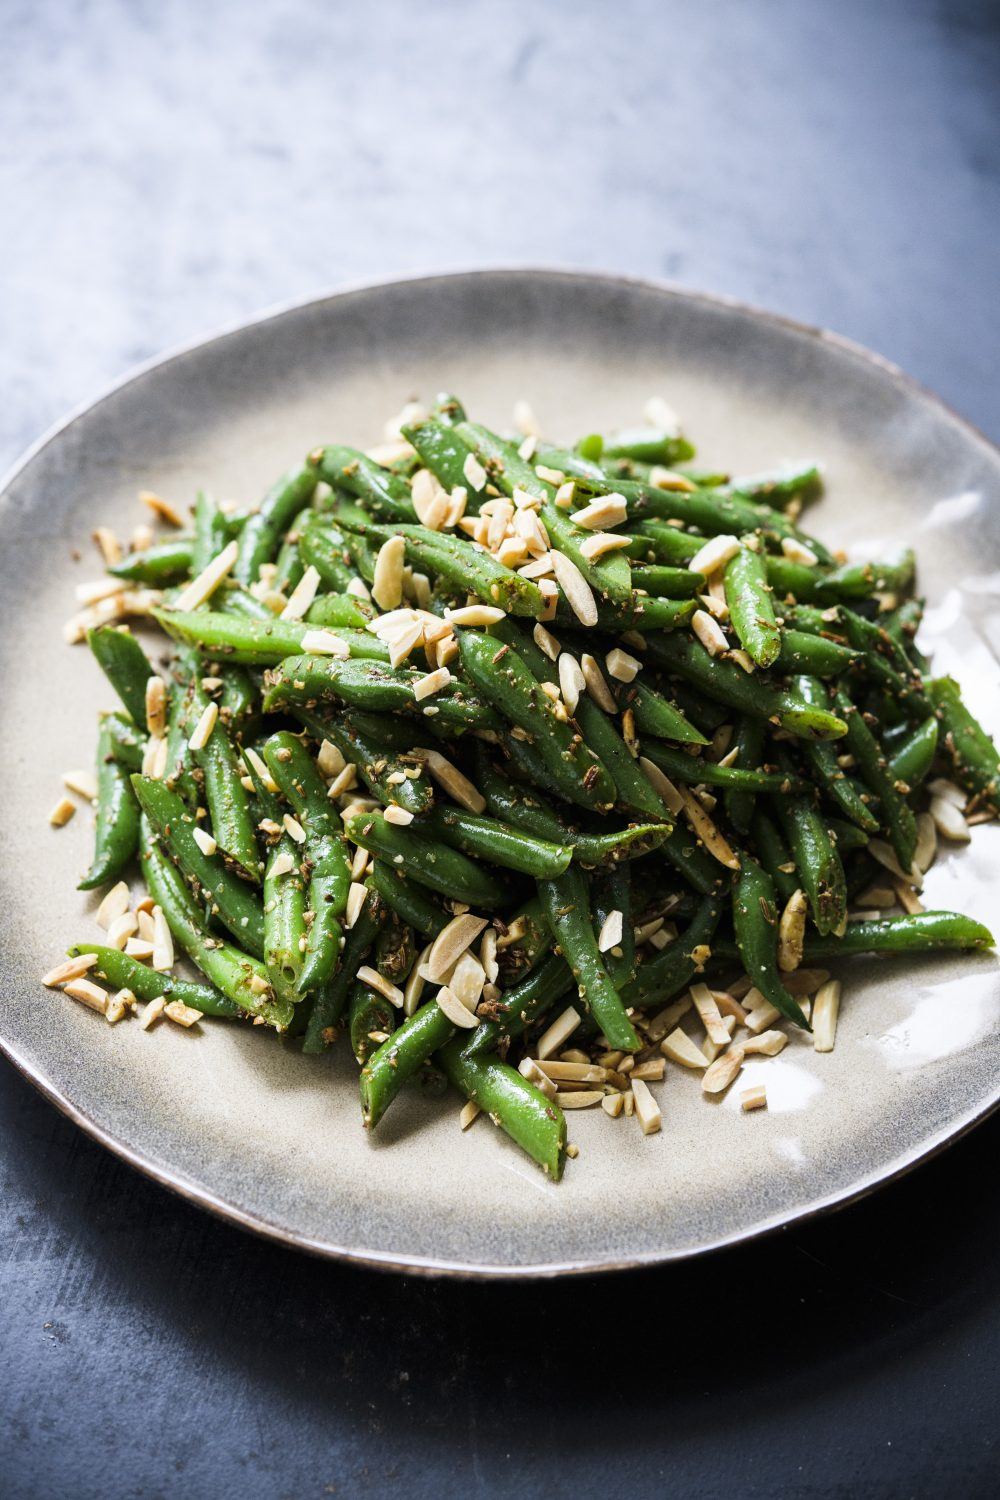 Green Beans with Toasted Almonds, Browned Butter and Whole Spices